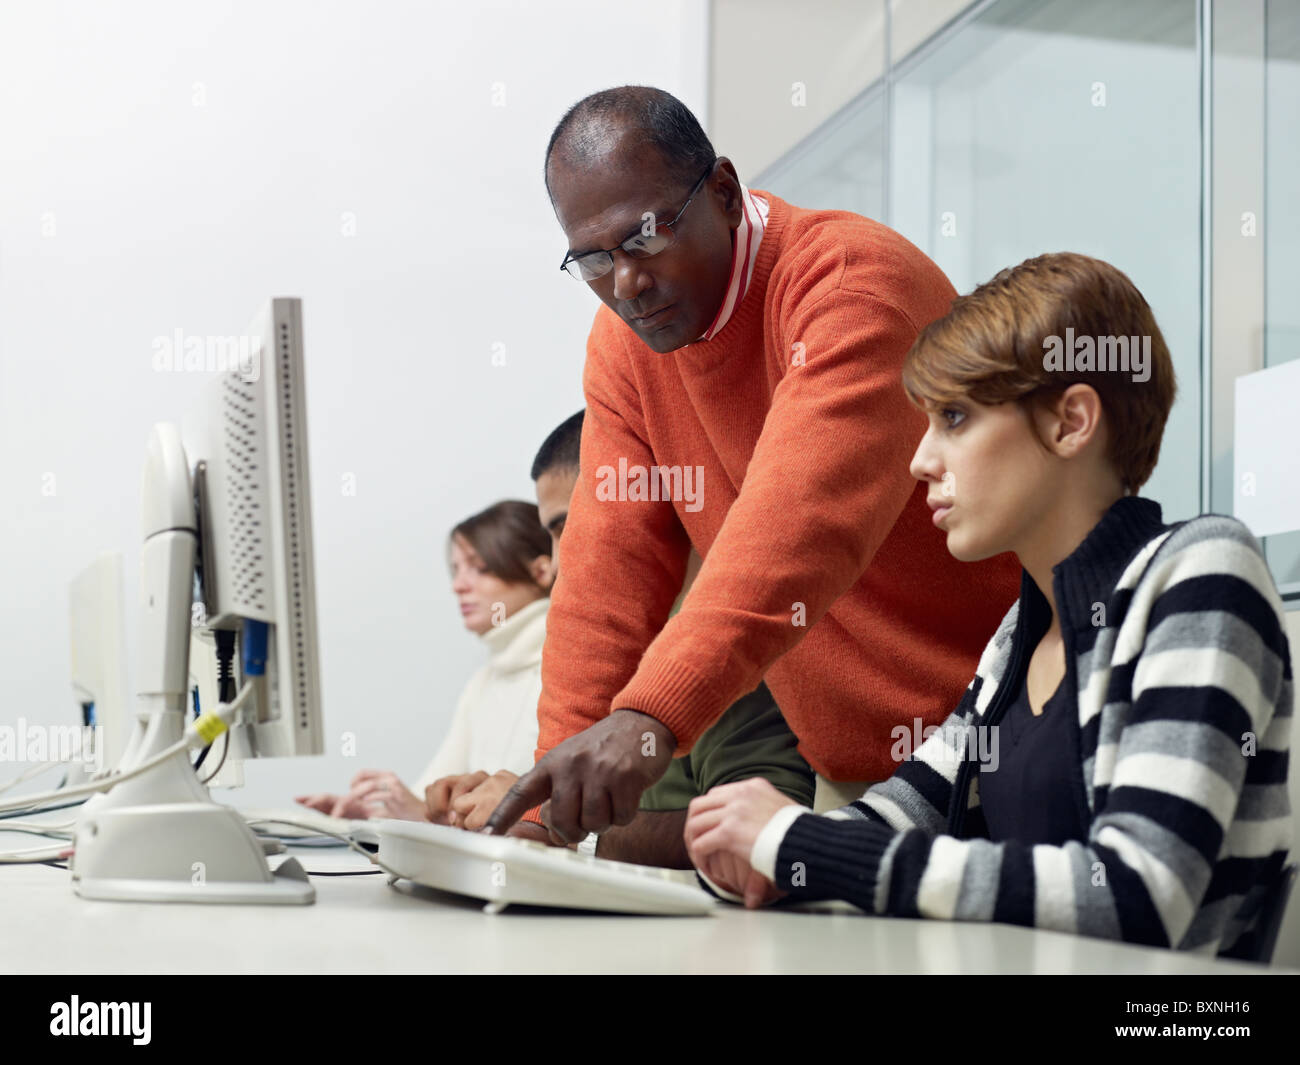 Computer class with indian male teacher helping female student. Horizontal shape, side view, waist up, copy space - Stock Image